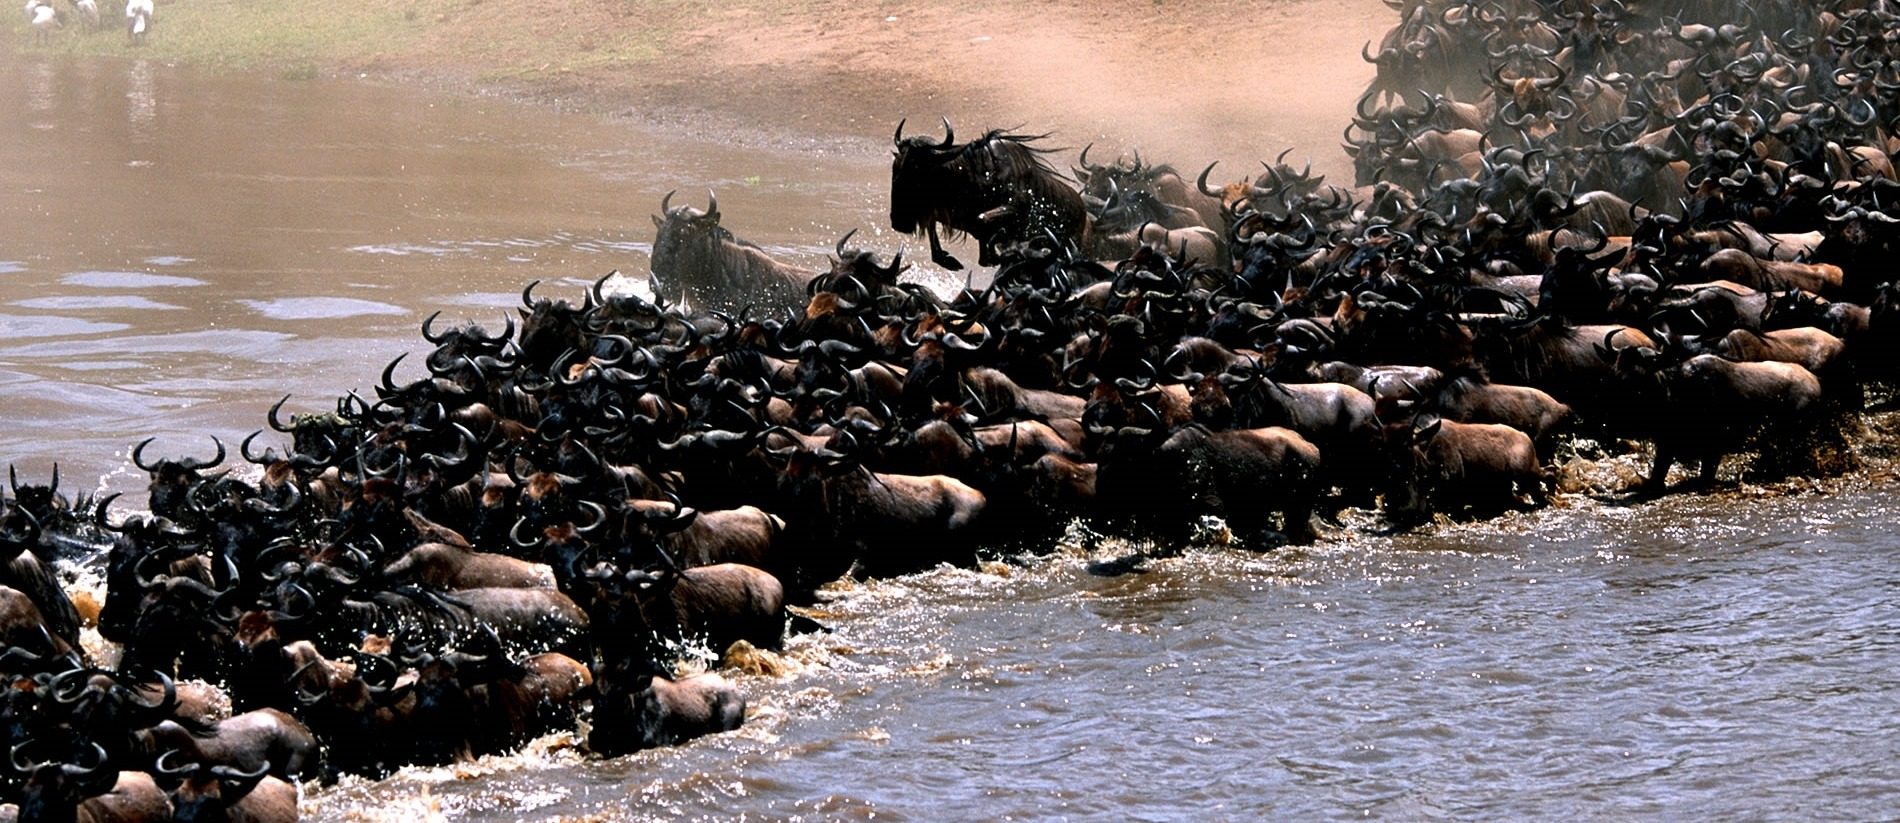 The Wildebeests Migrating across E. Africa